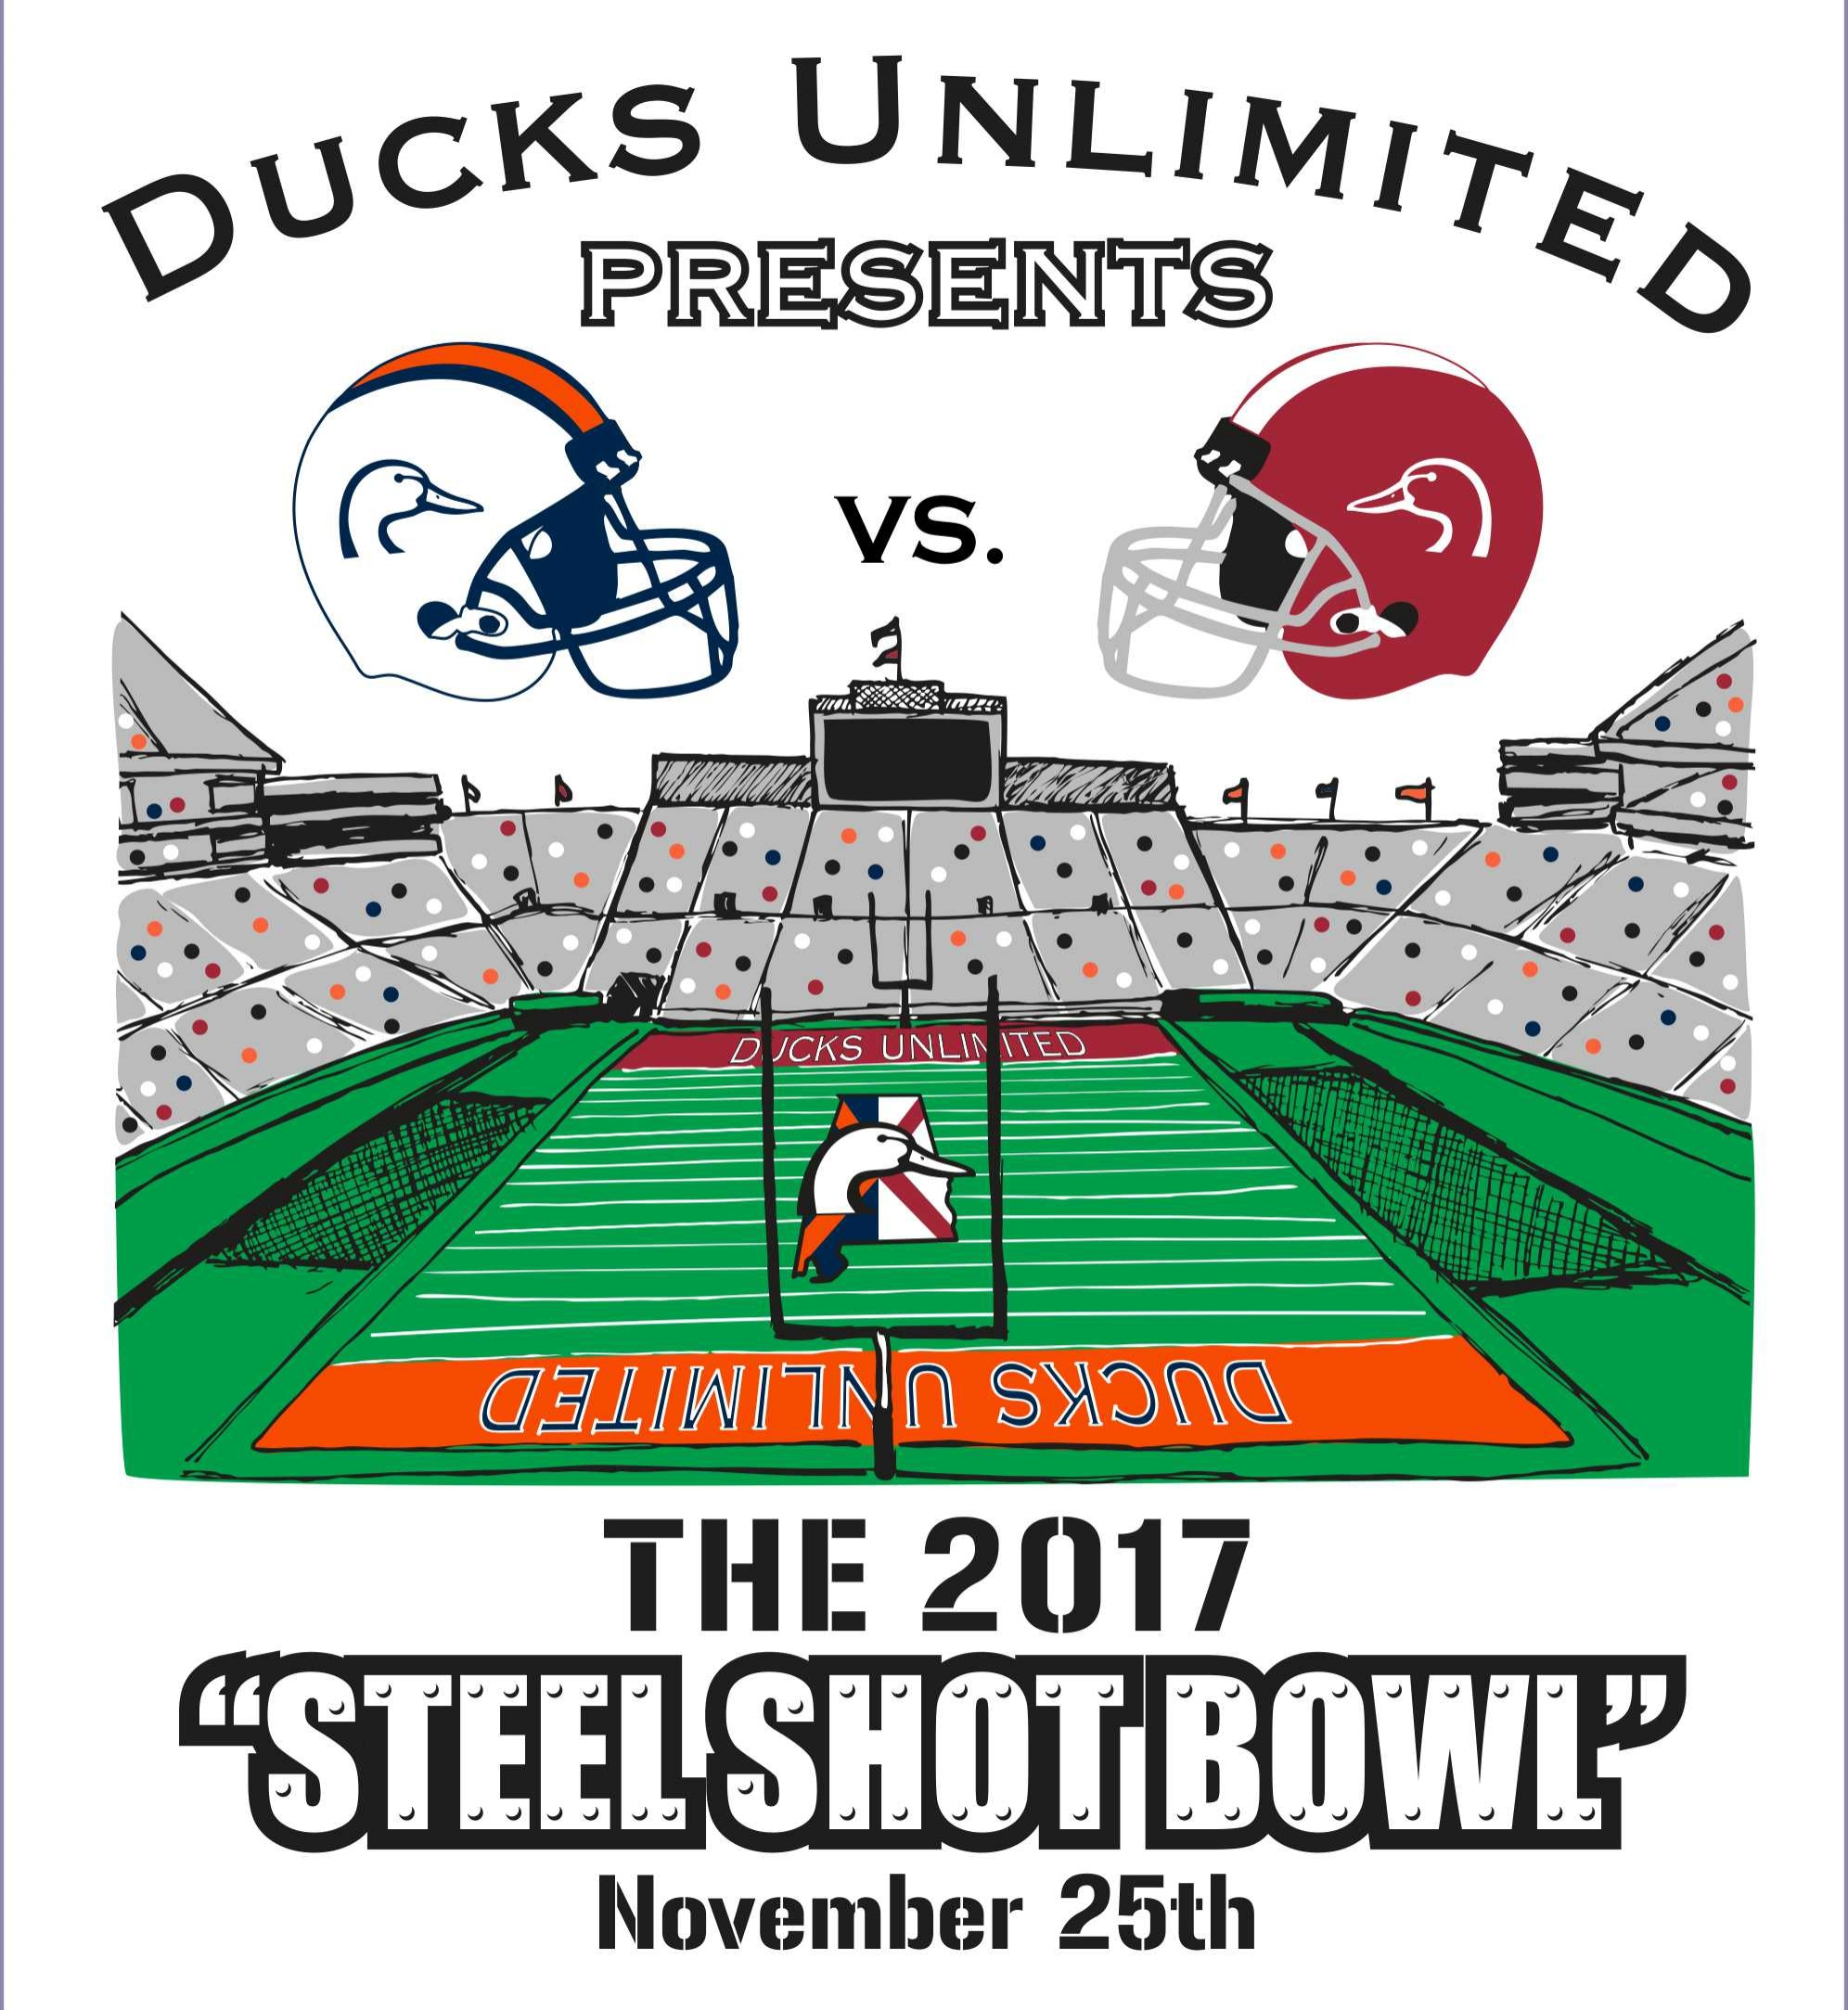 AU_ducks_unlimited_tungsten_bowl.jpg